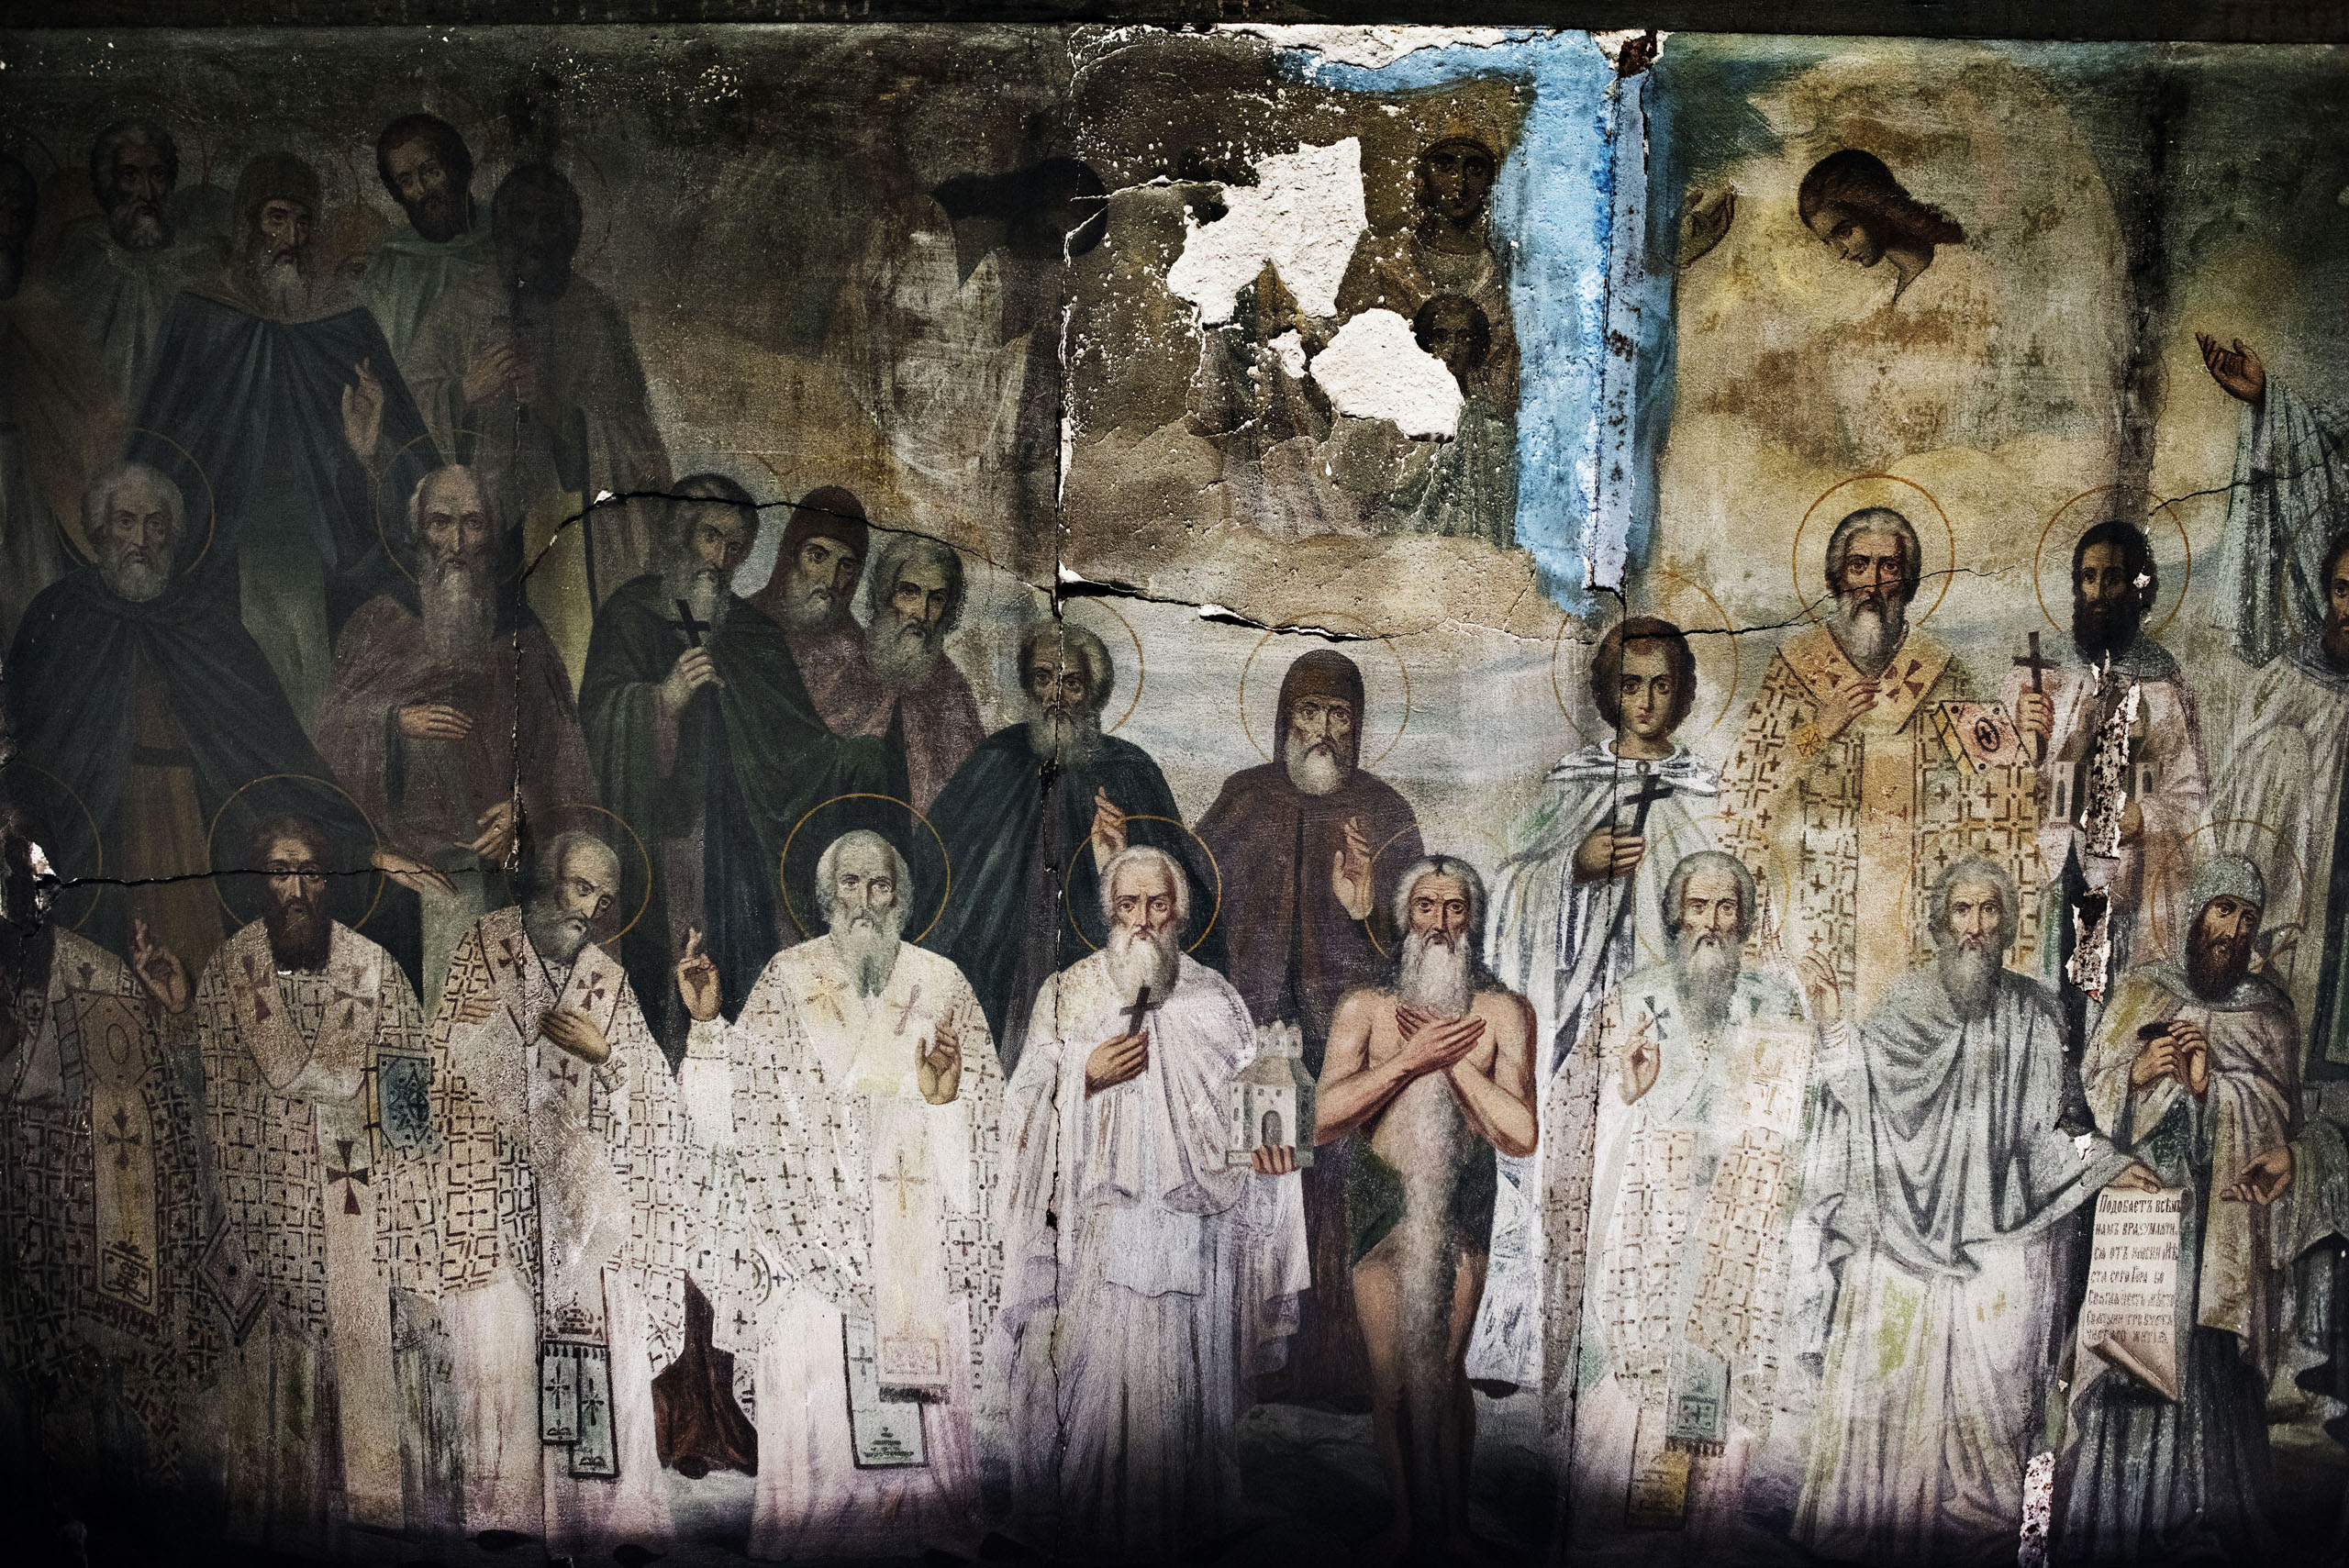 A fresco depicting saints of the Orthodox Church inside the Skete, the monastic community,  of St. Andrew, near Karyes, the capital of Mount Athos, in northern Greece,  May 27, 2016.